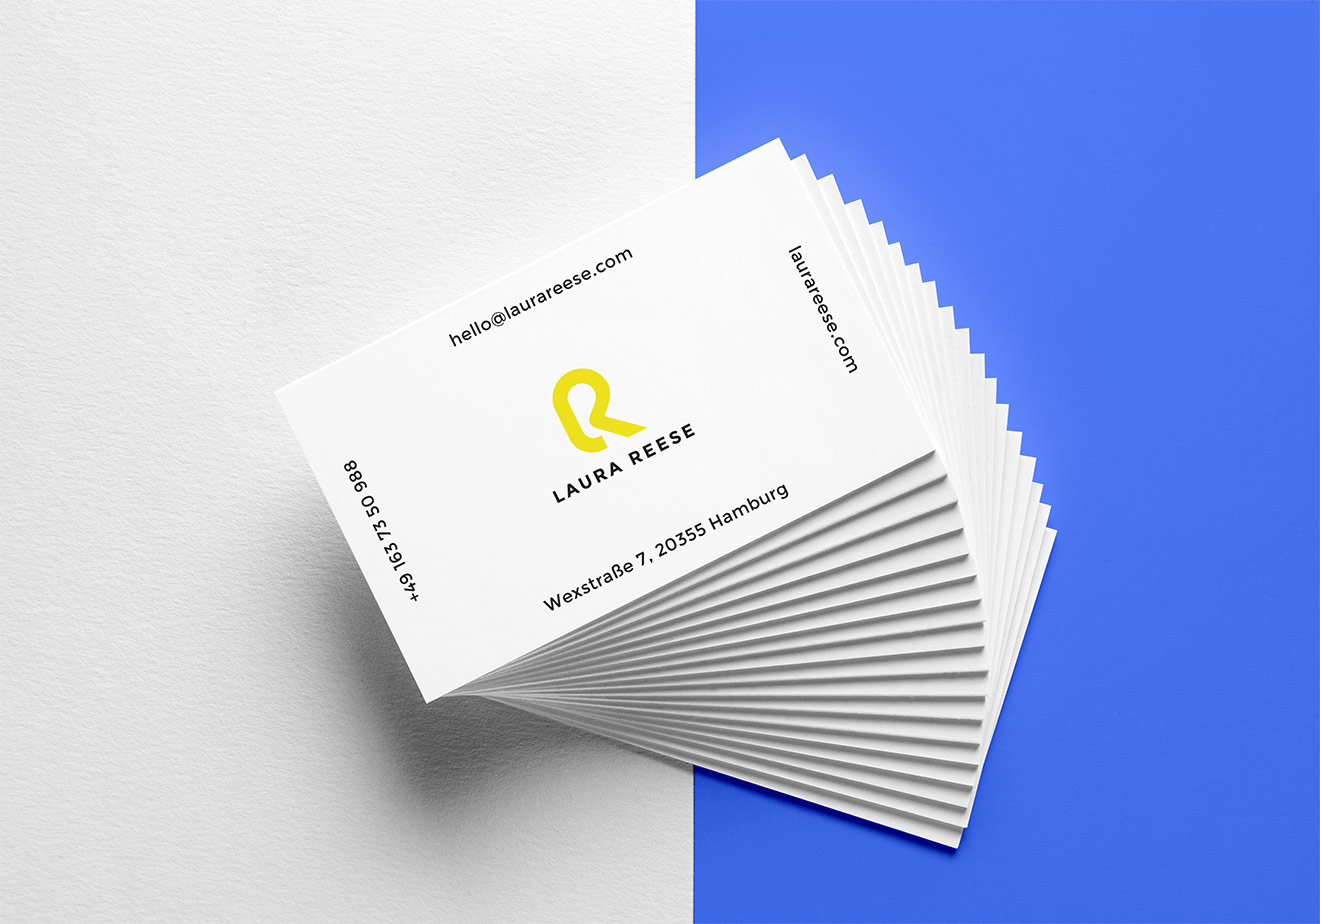 Laura Reese Corporate Identity